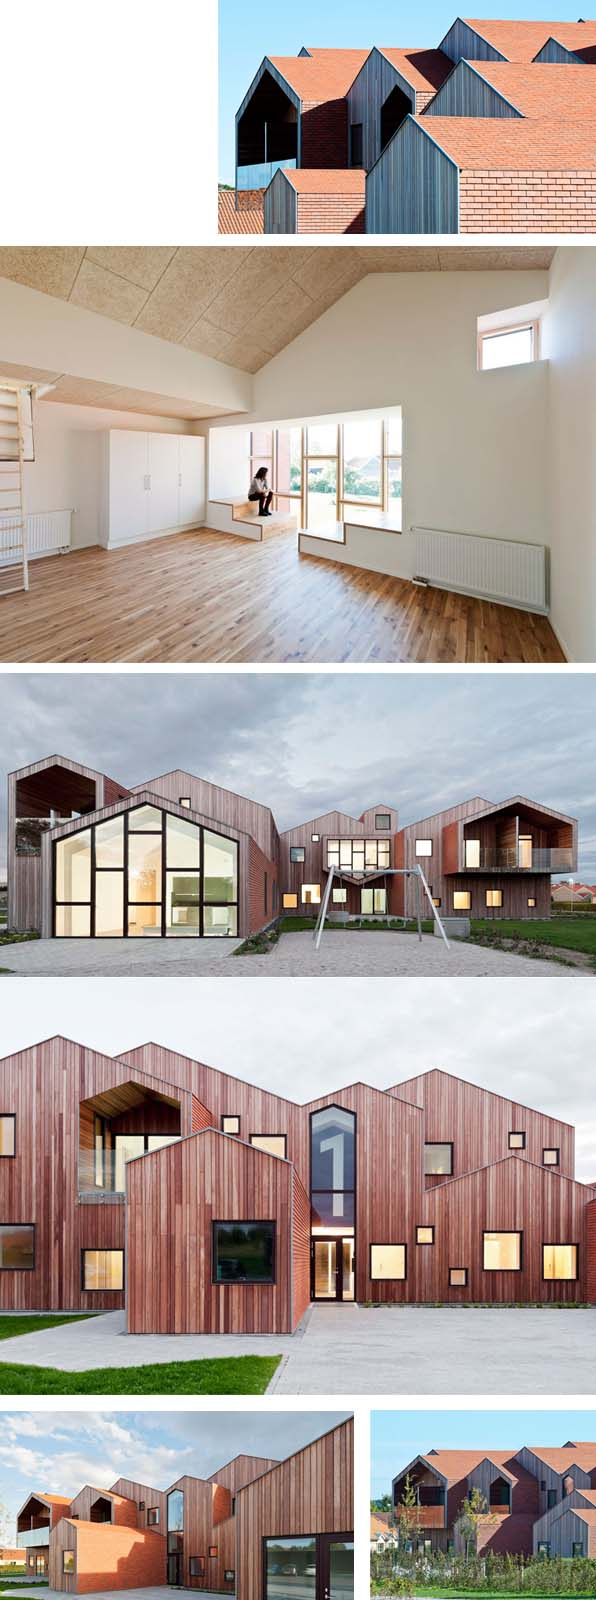 CHILDRENS_HOME_FUTURE_CEBRA_ARCHITECTURE_EN_MODUS_VIVENDI_01